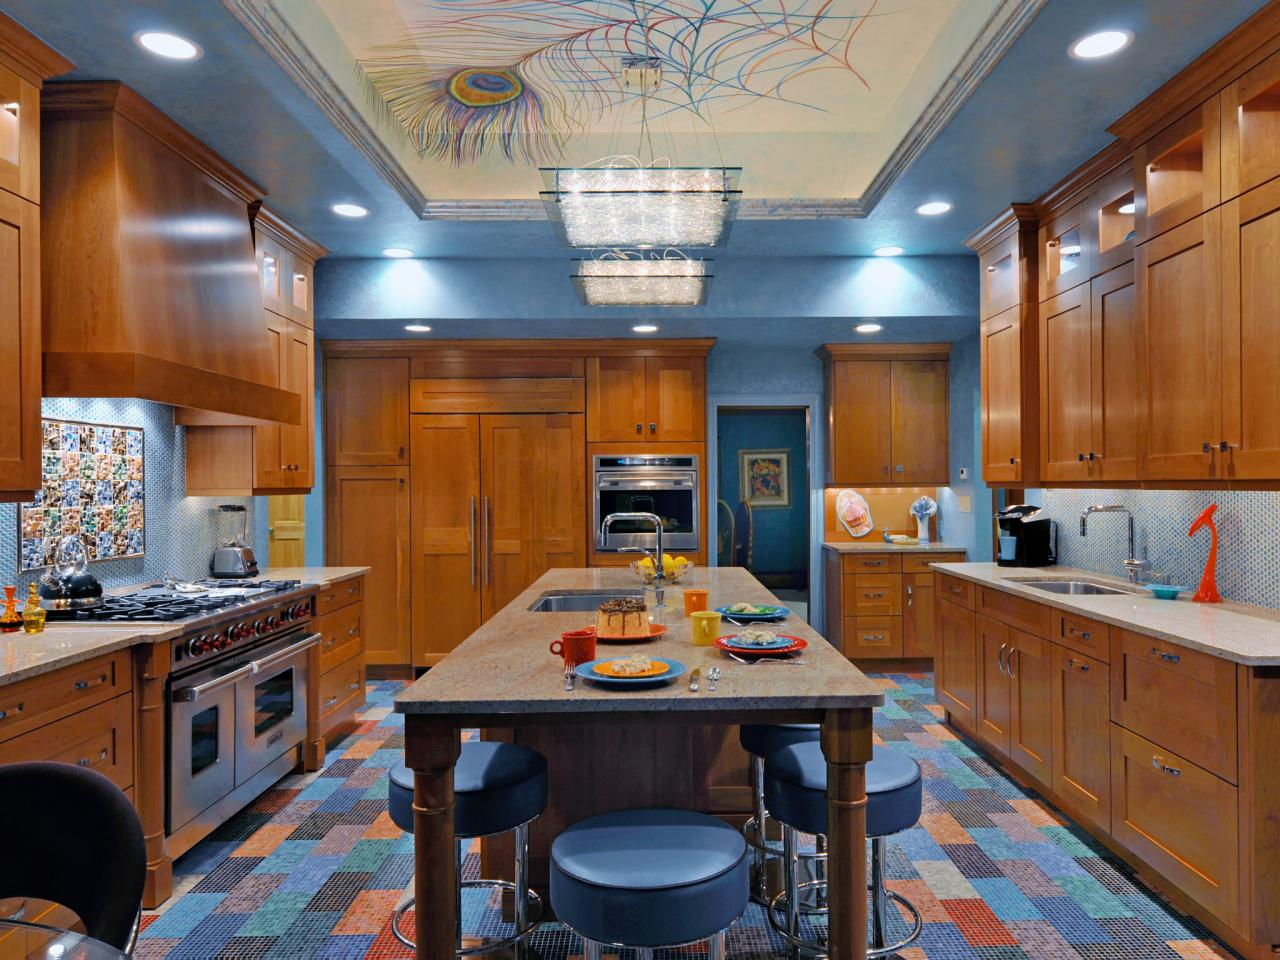 Paint ideas for kitchens pictures ideas tips from hgtv for Blue kitchen paint ideas